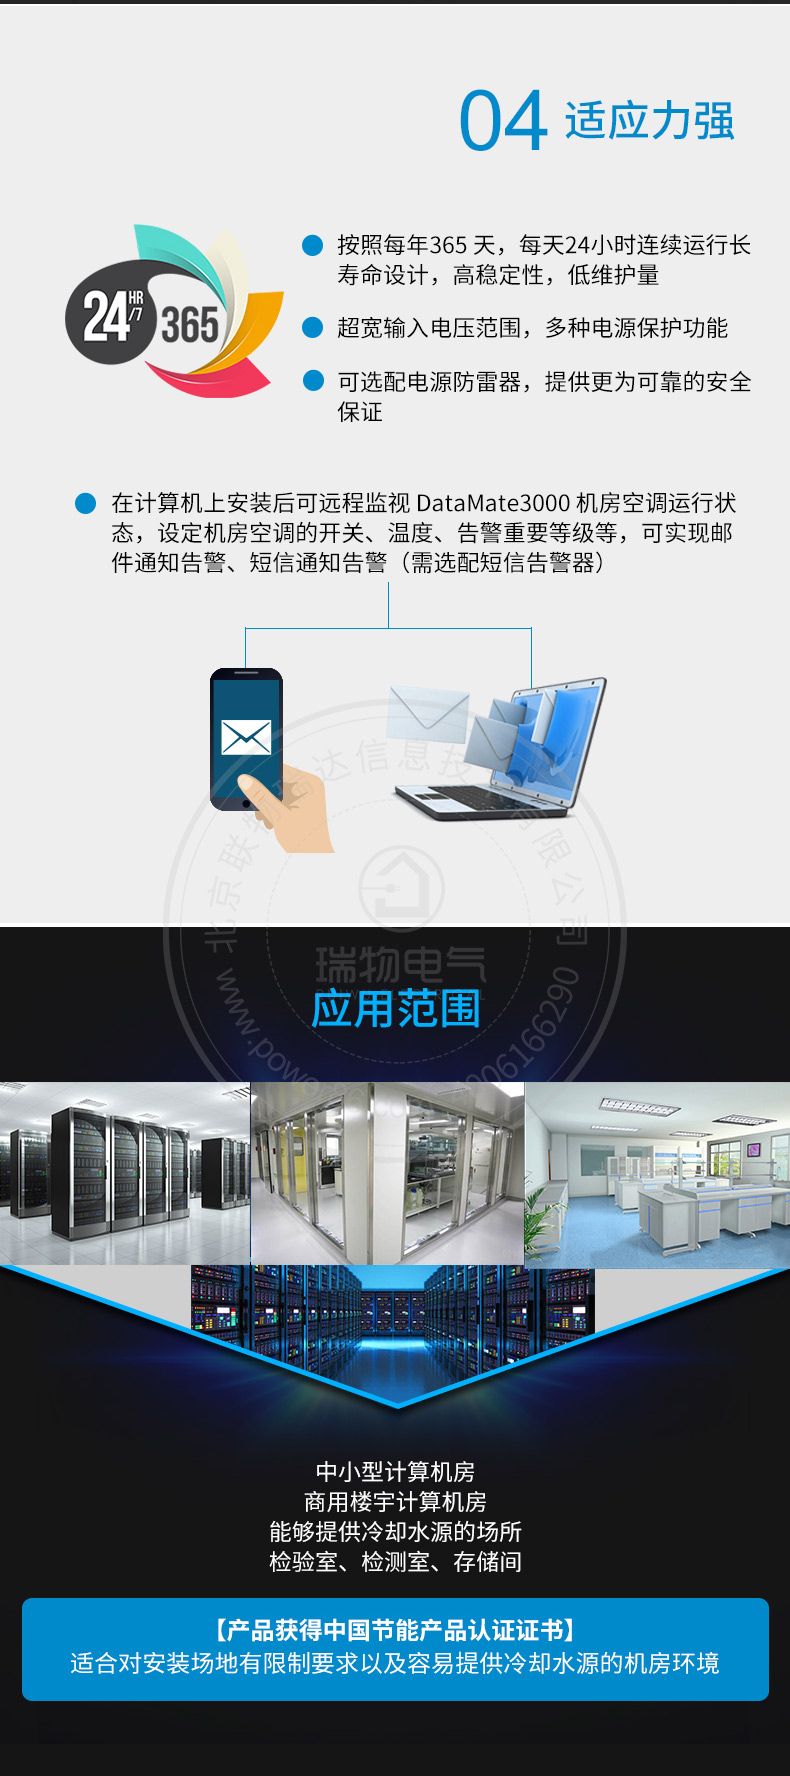 产品介绍http://www.power86.com/rs1/air/590/616/77/77_c4.jpg